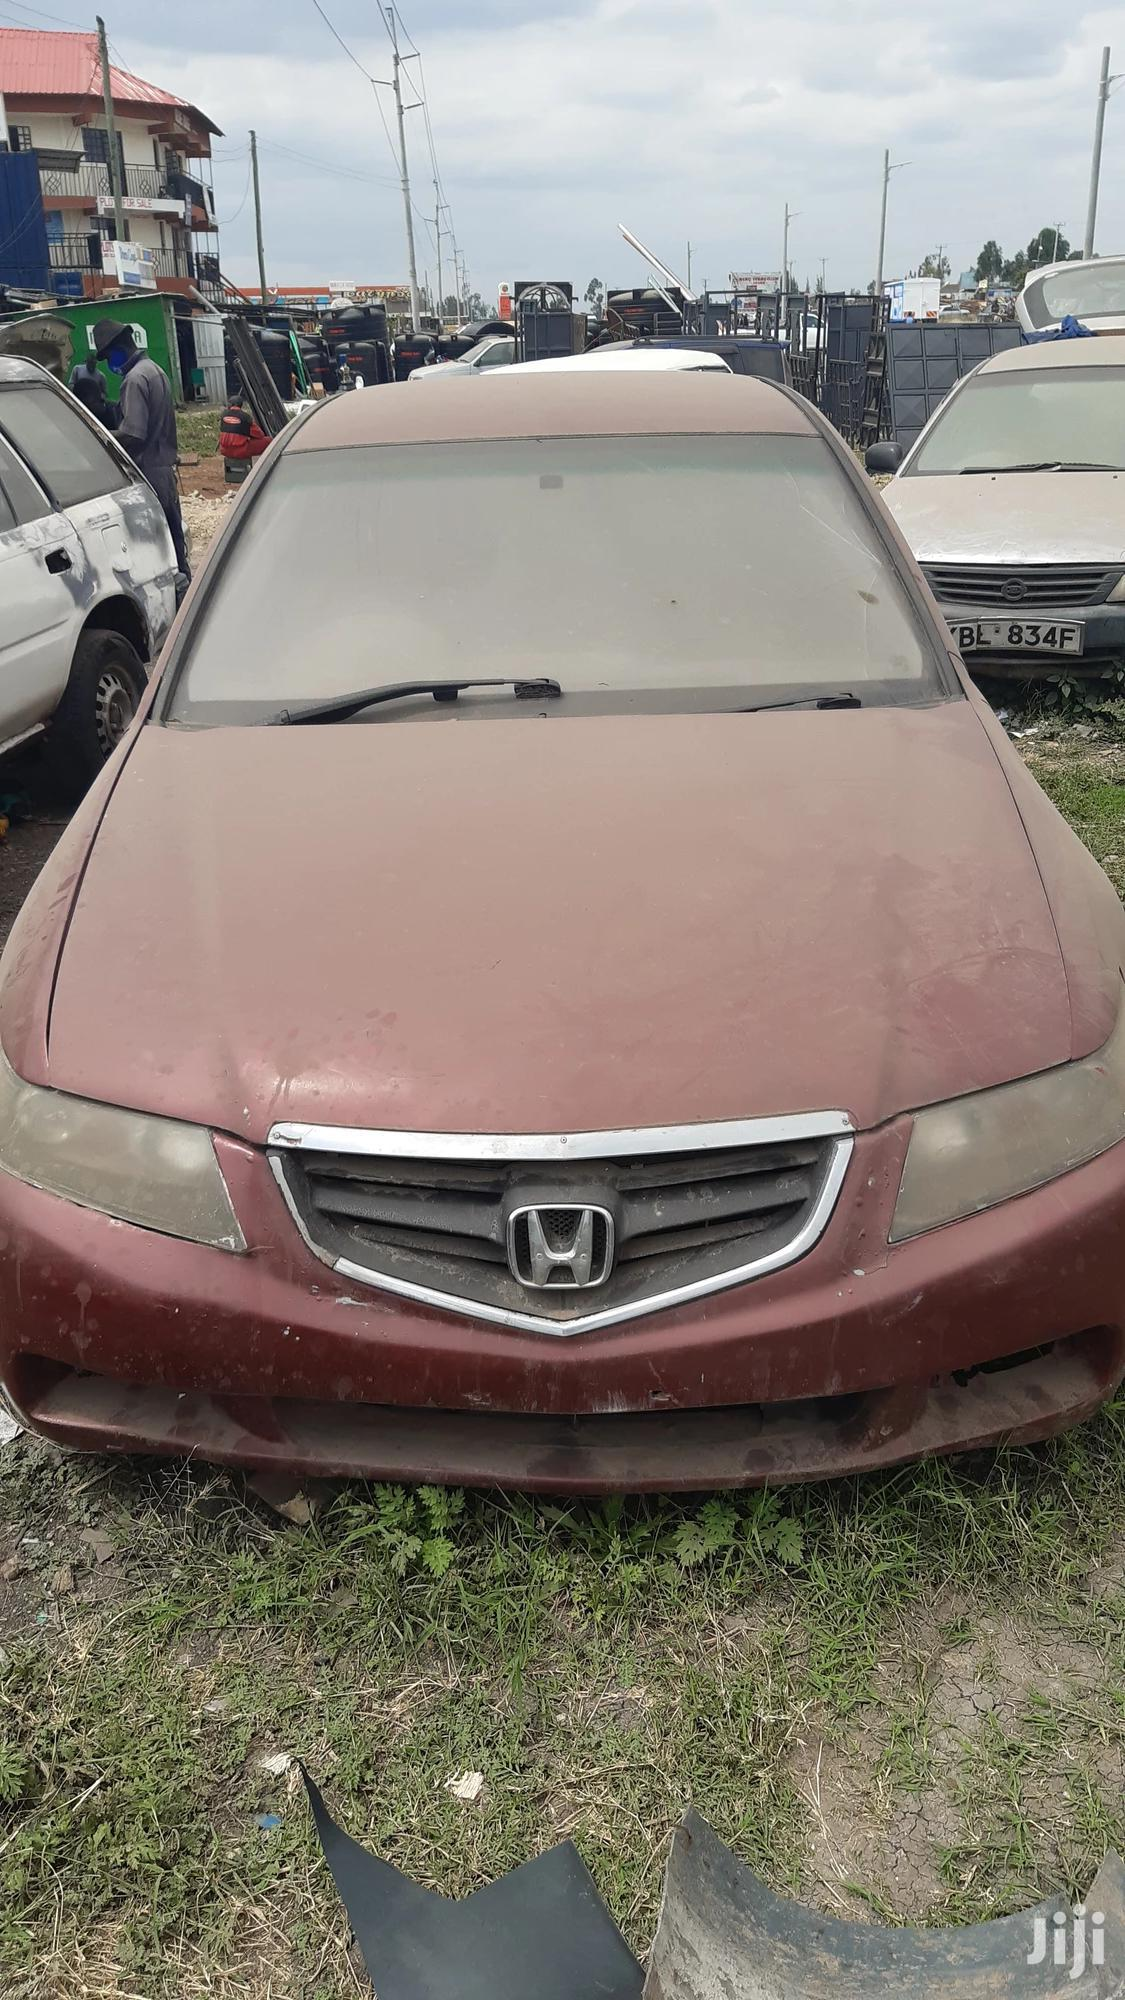 Archive: Honda Accord 2005 Automatic Red